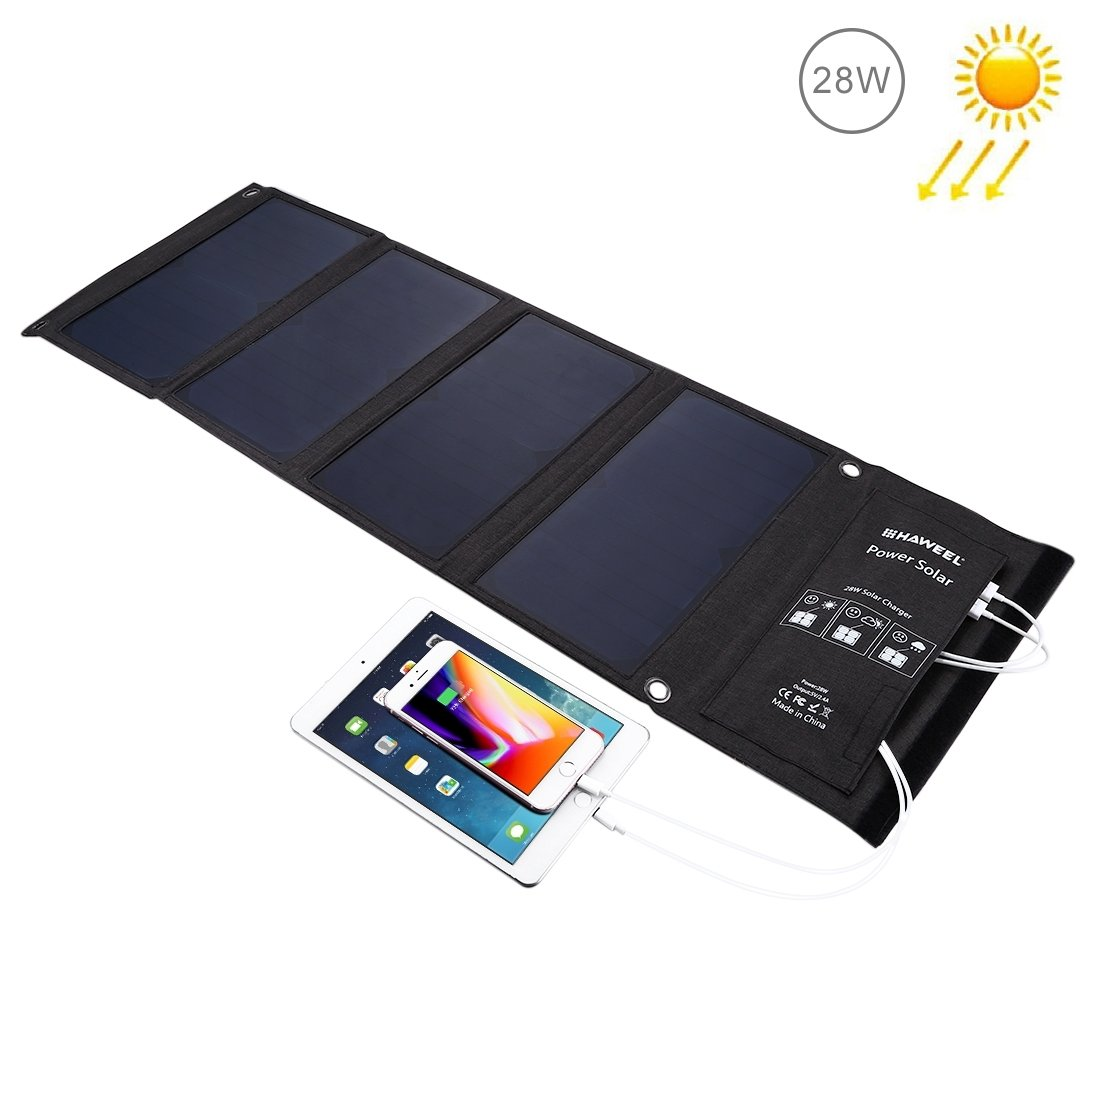 HAWEEL Solar Charger 28W Dual Solar Panel with USB Port Waterproof Foldable for iPhone X, 8 & 8 Plus, iPad Pro Air 2 mini, Galaxy S8 S7 S6 Edge Plus, Note 5 4, LG, Nexus and More